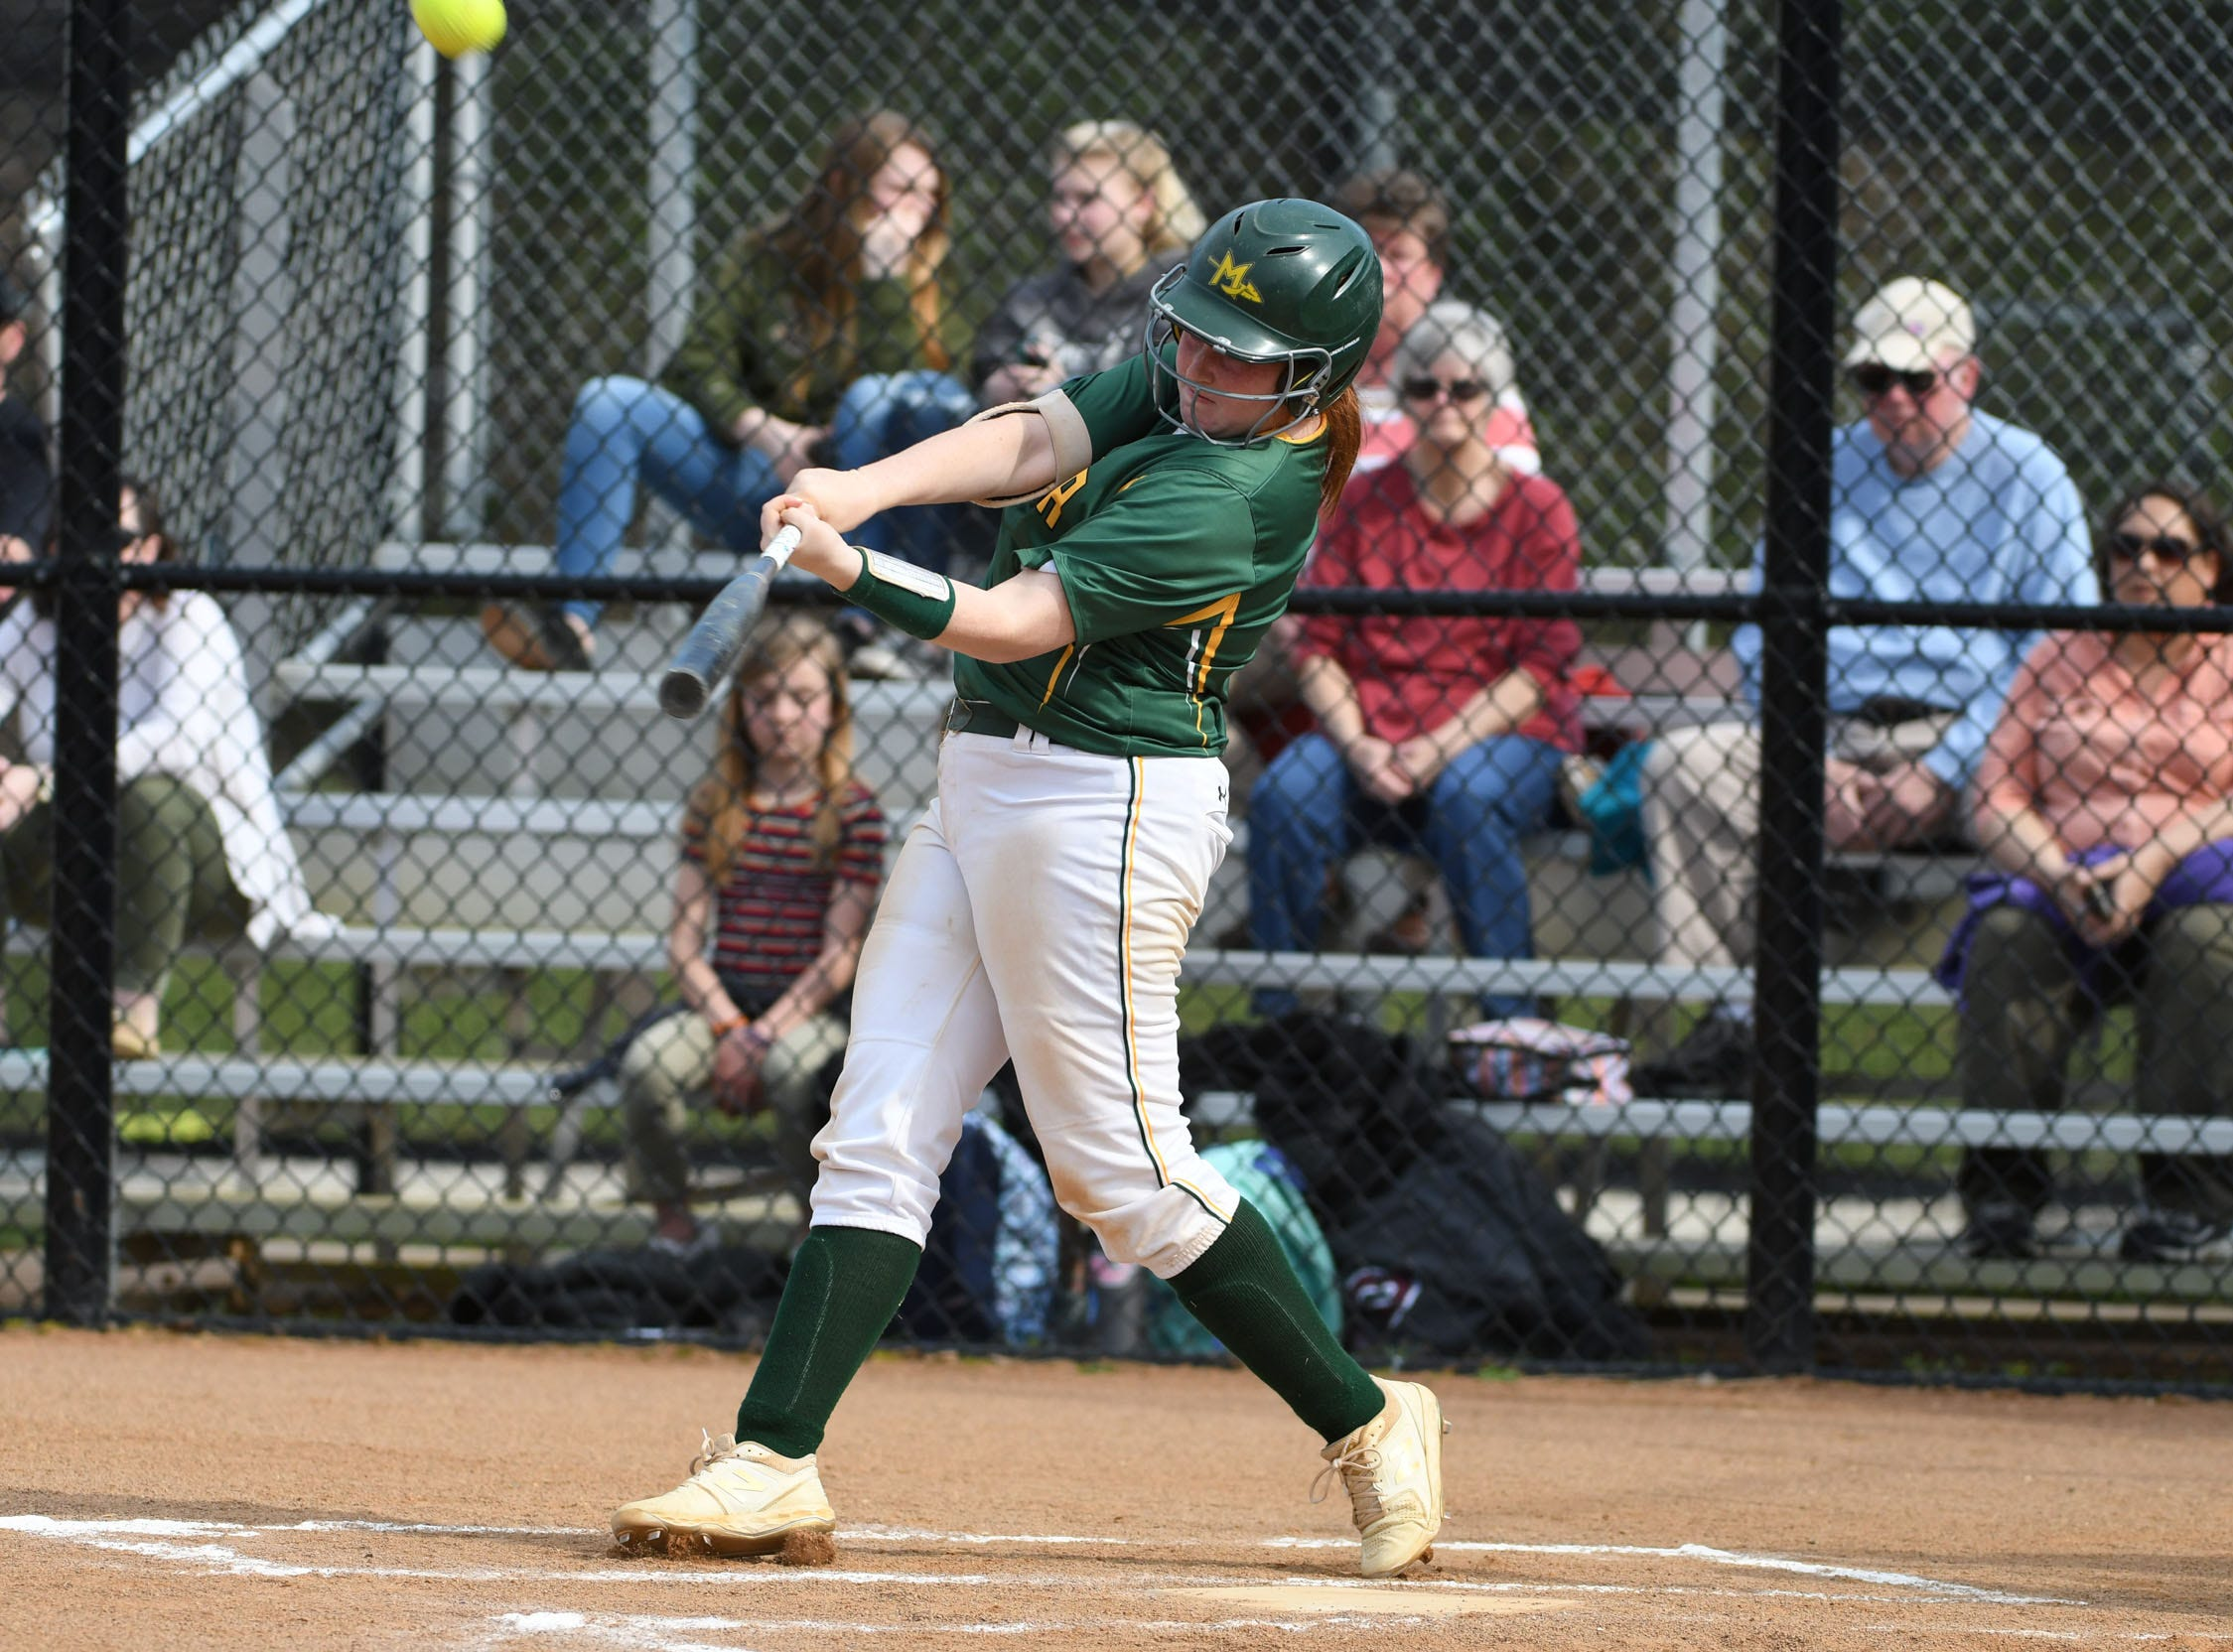 Mardela's Riley Niblett with a hit against Snow Hill on Monday, April 8, 2019 in Snow Hill, Md.